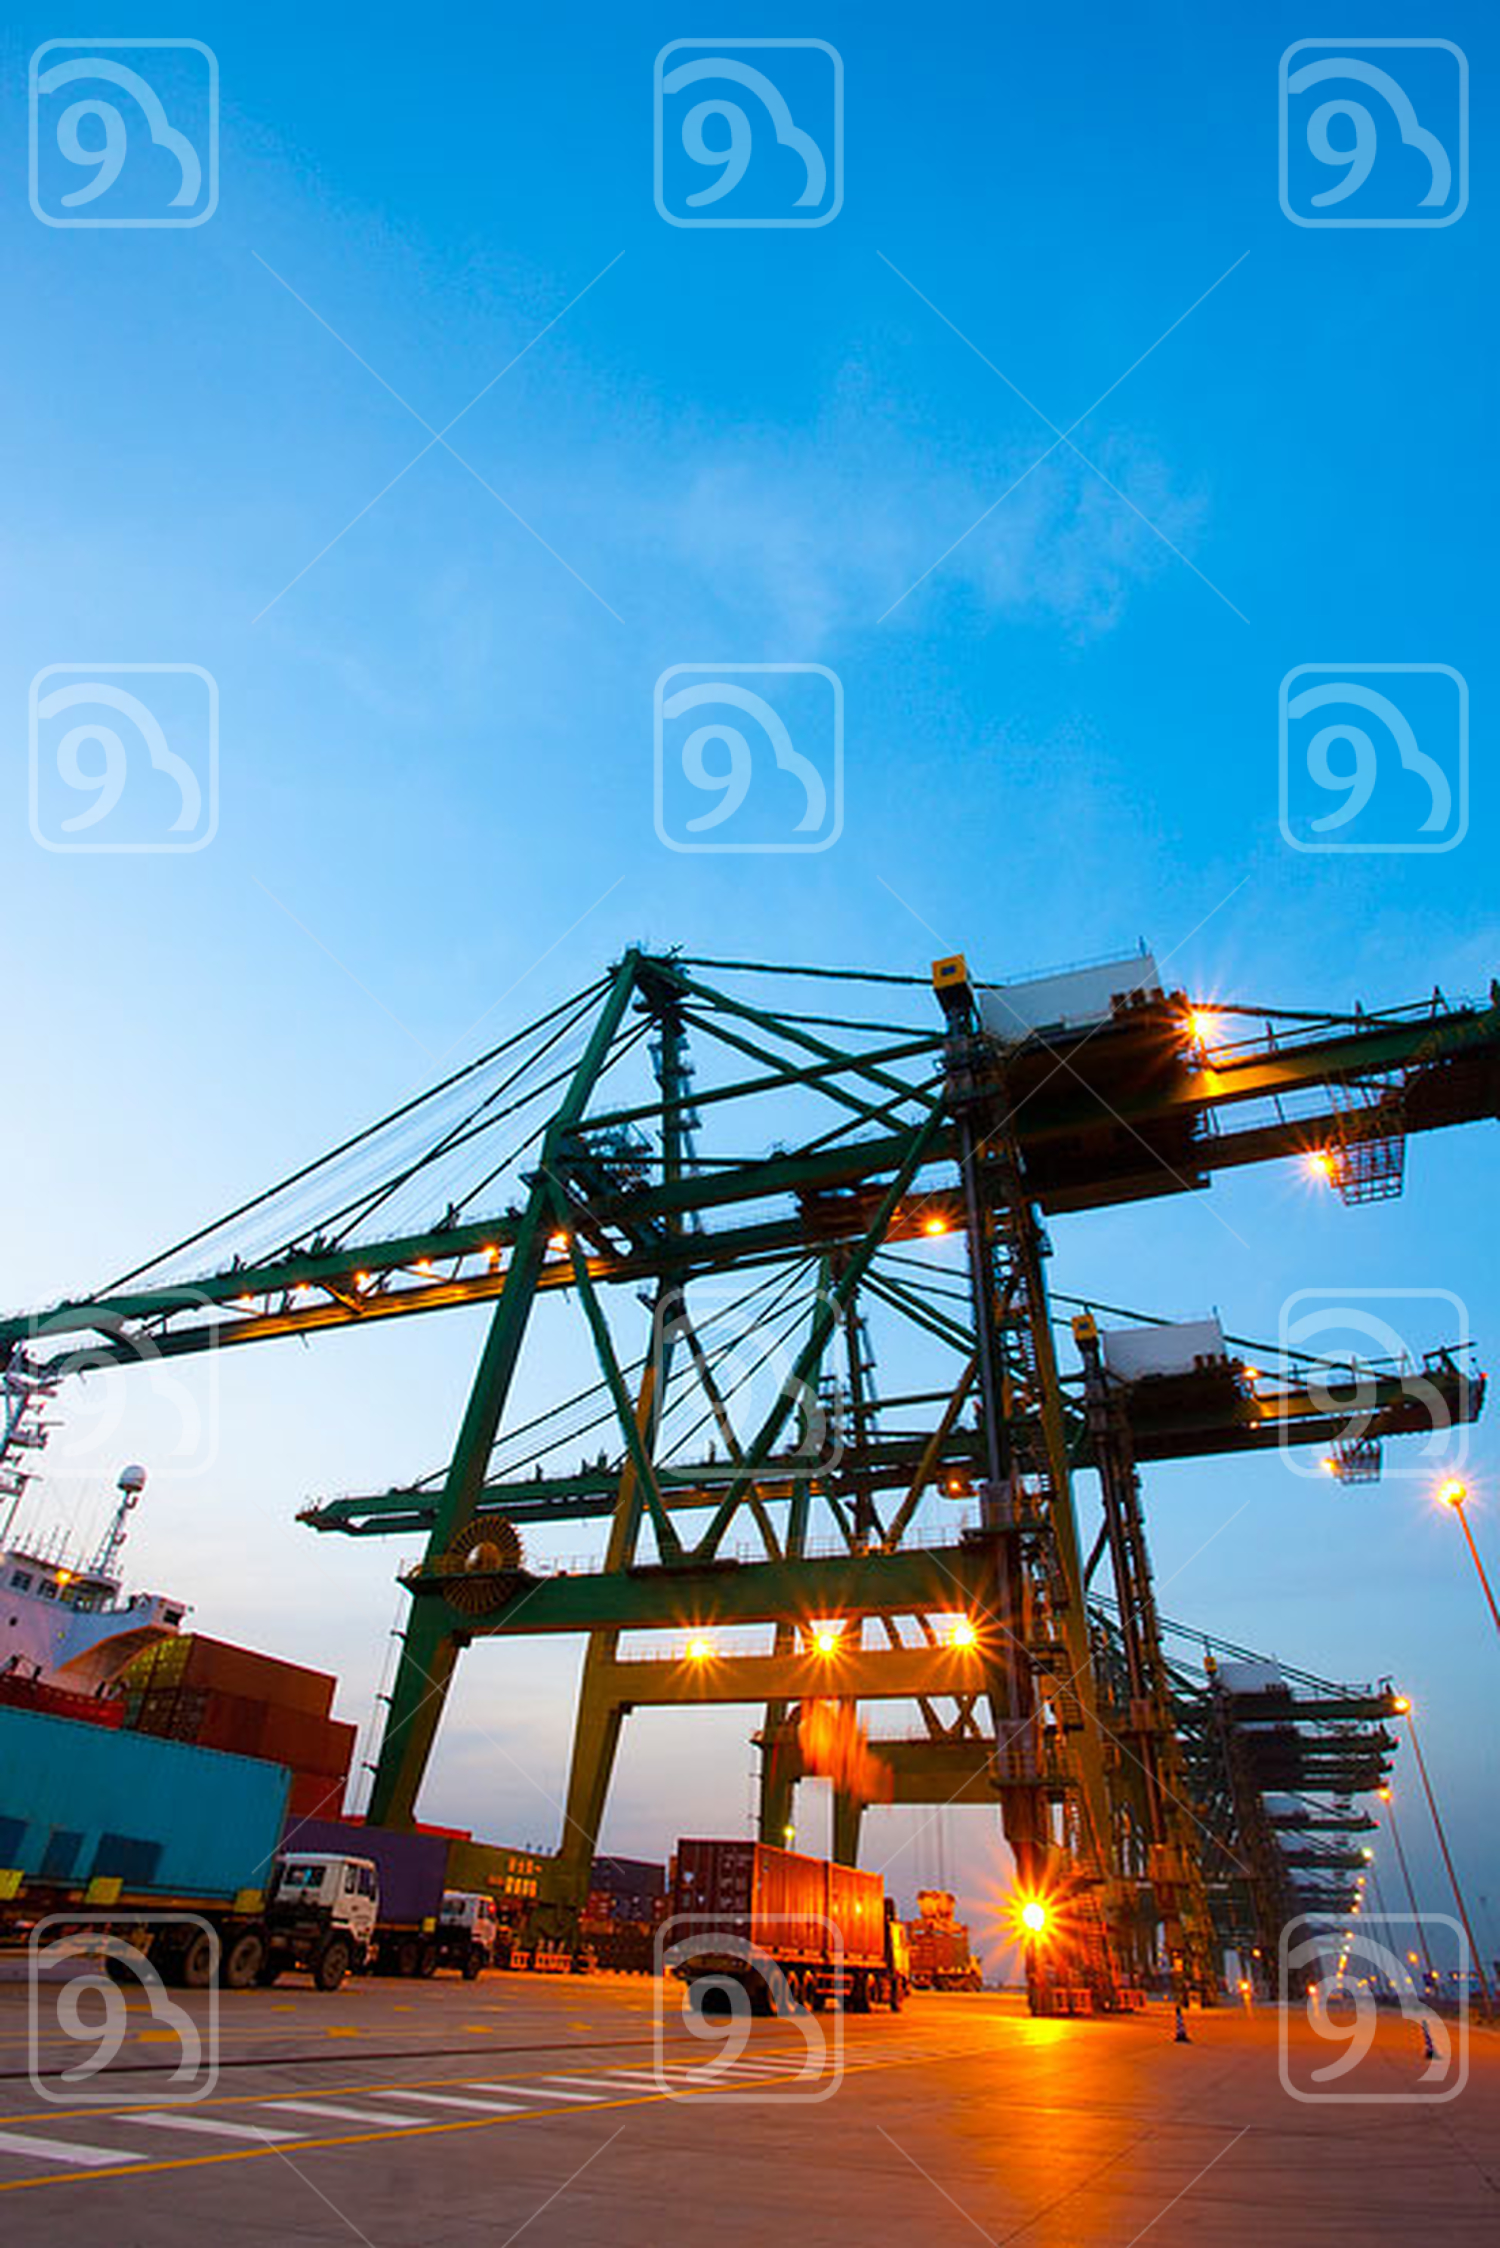 Cranes, cargo containers and trucks at a shipping port during dusk